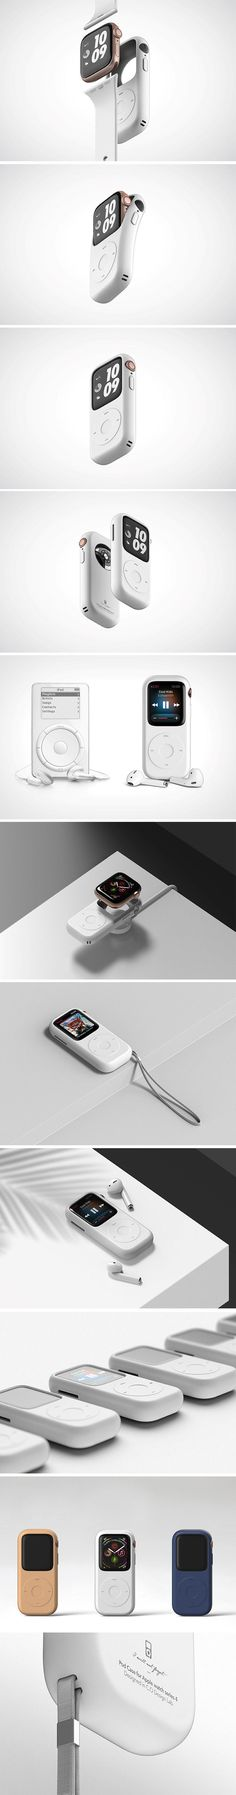 Joyce Kang and C.O Design Lab's Pod Case gives the Apple Watch a retro twist. The watch's screen roughly matches the screen size found in classic iPod Nanos, and its body is only slightly thicker. Technology Design, Cool Technology, Technology Apple, Technology Gadgets, Yanko Design, Design Lab, Design Ideas, Gadgets And Gizmos, Cool Gadgets